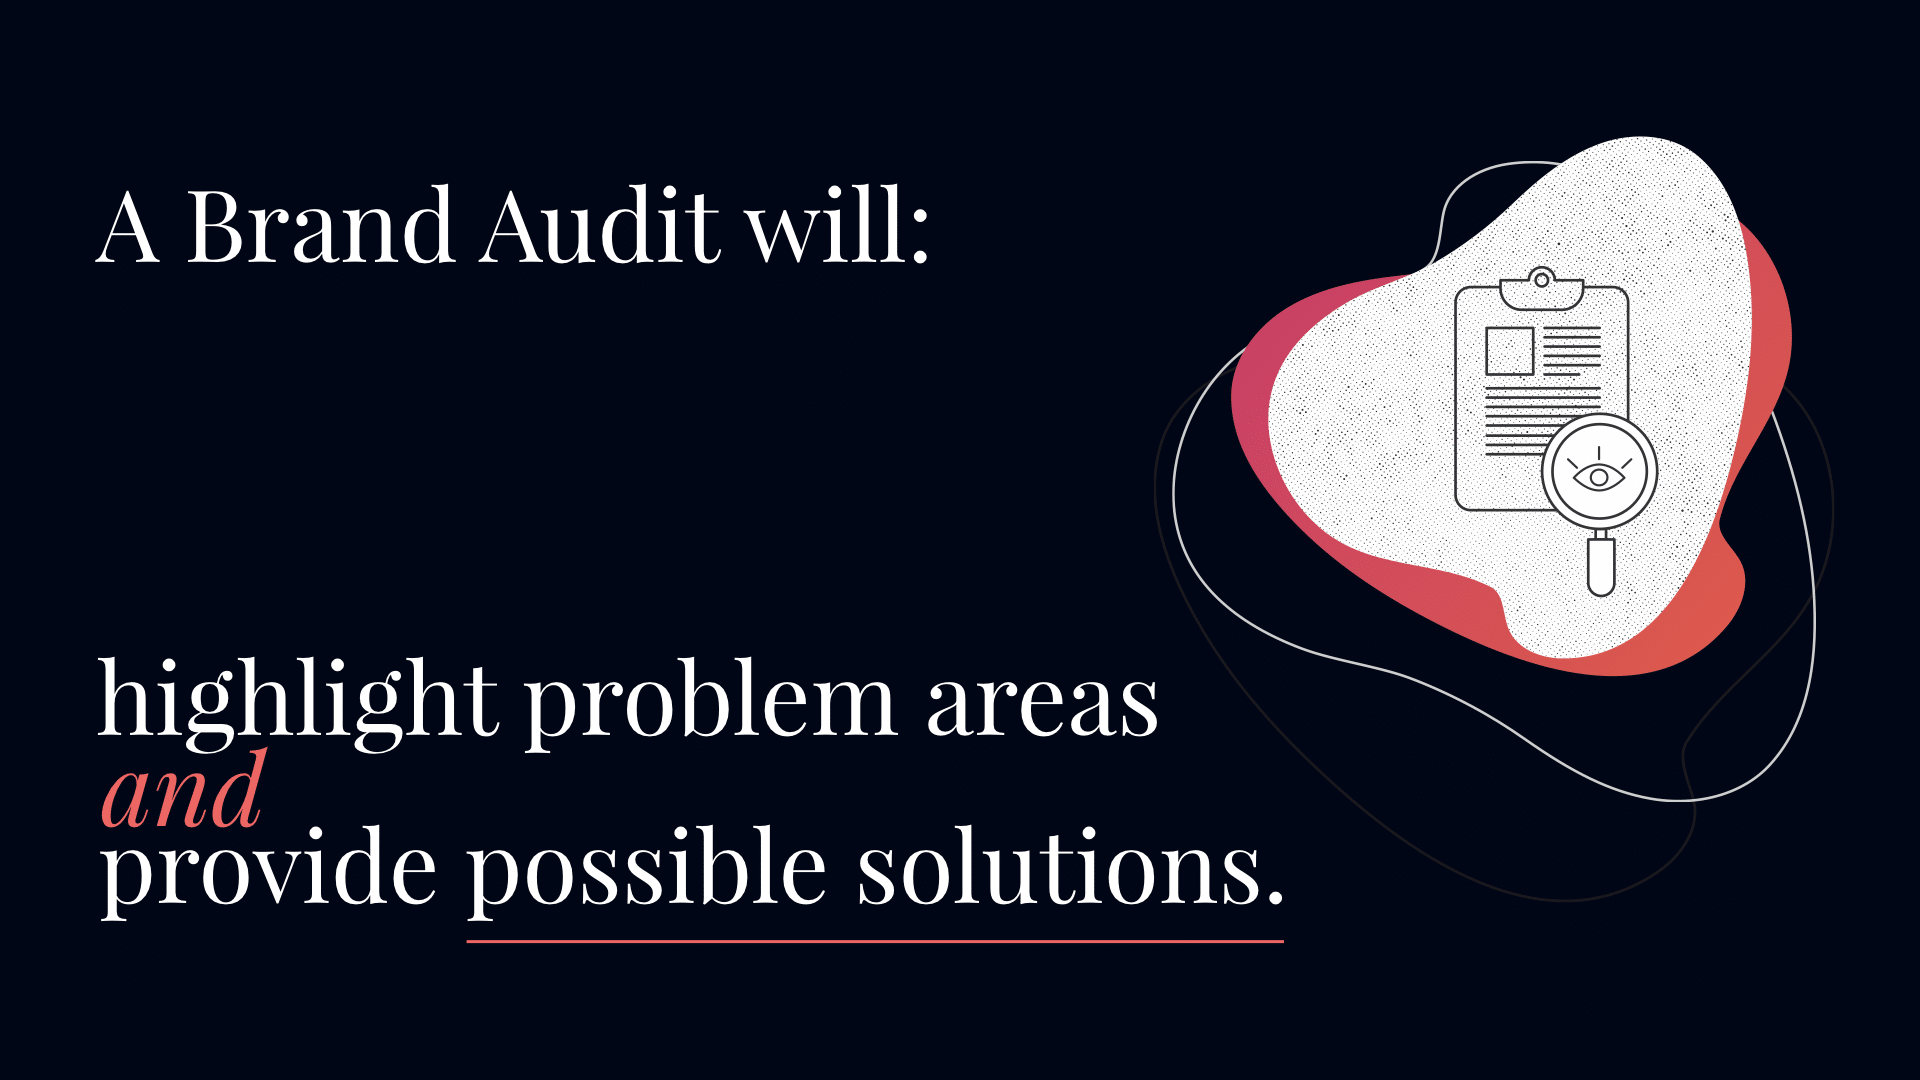 Business Brand Audit problems solved